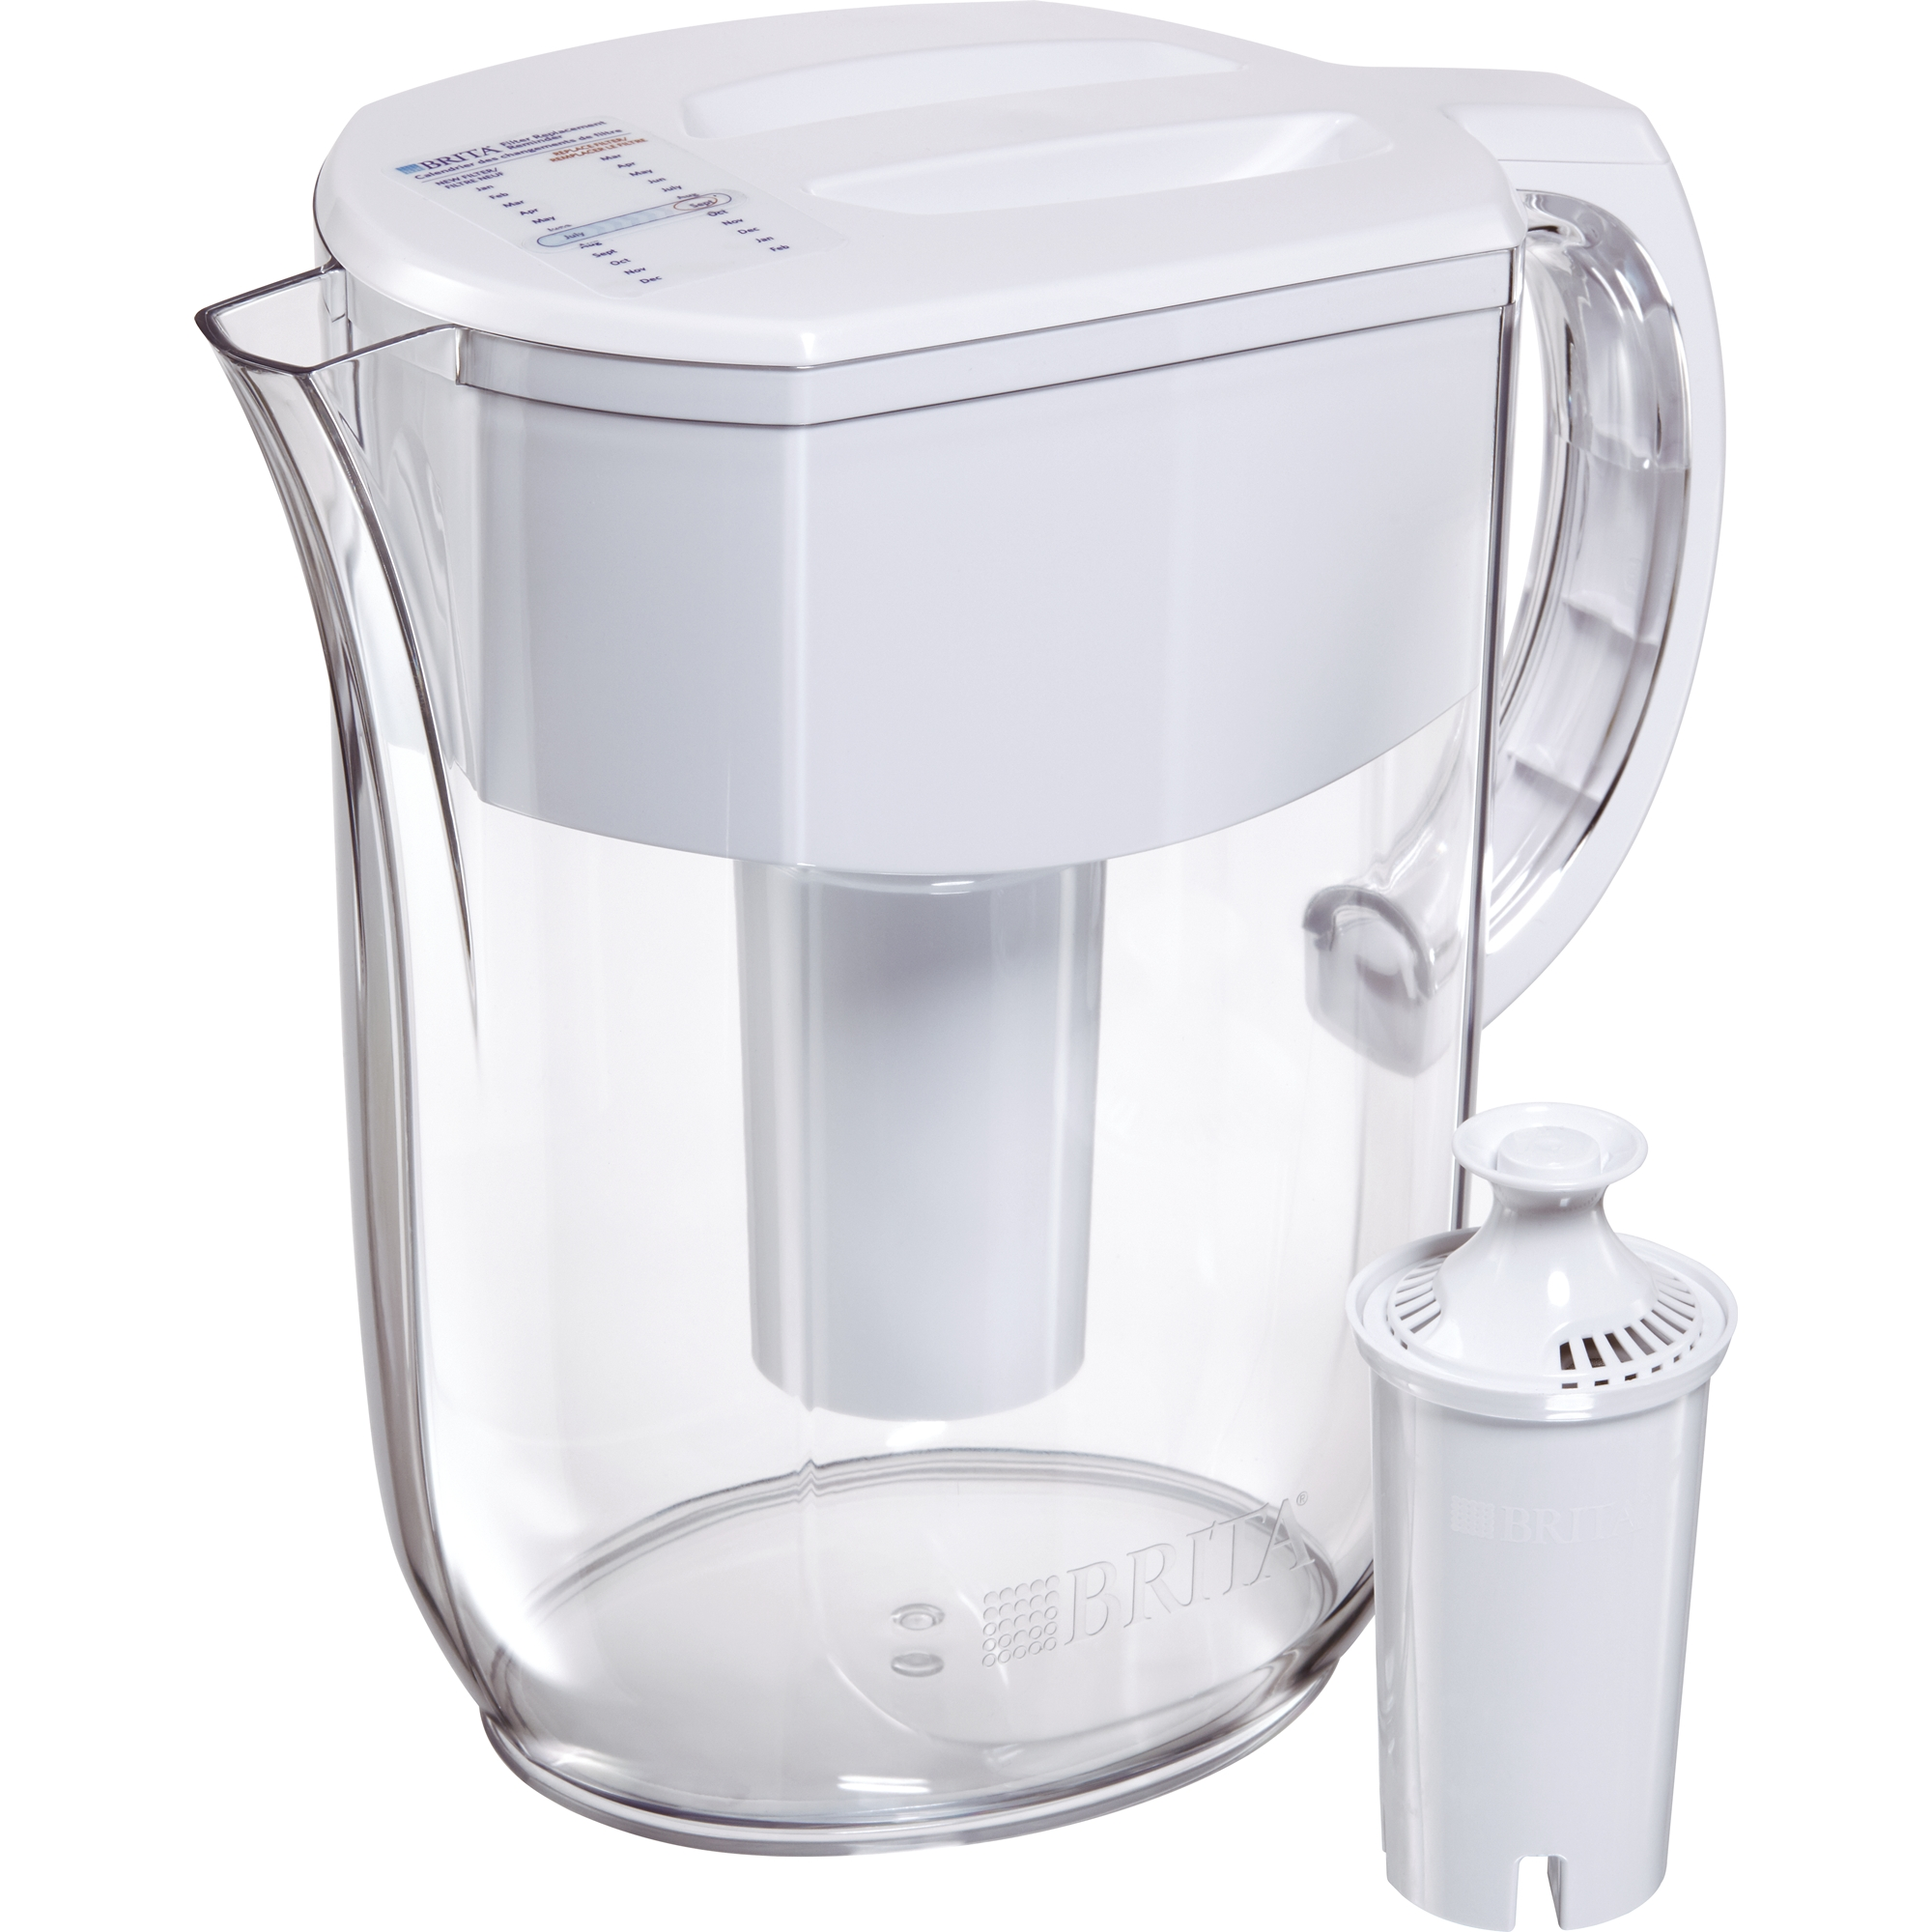 Brita Large Everyday Water Pitcher with Filter - 10 Cup - BPA Free - White